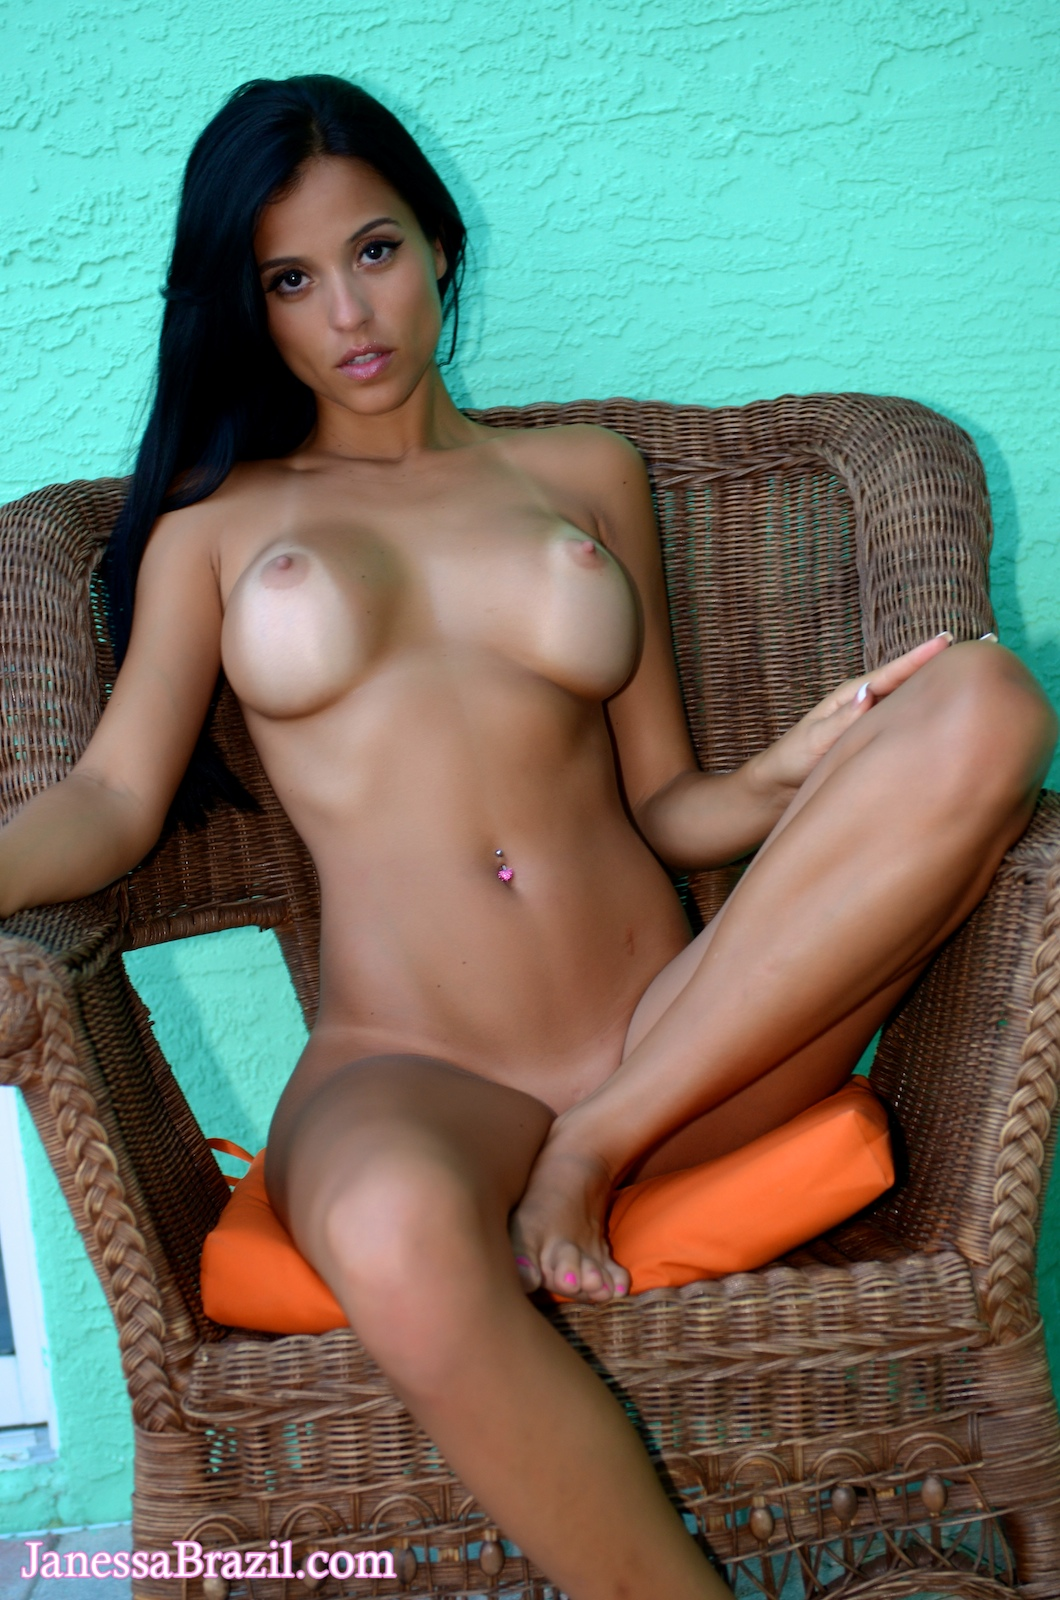 brazilian nude hot women